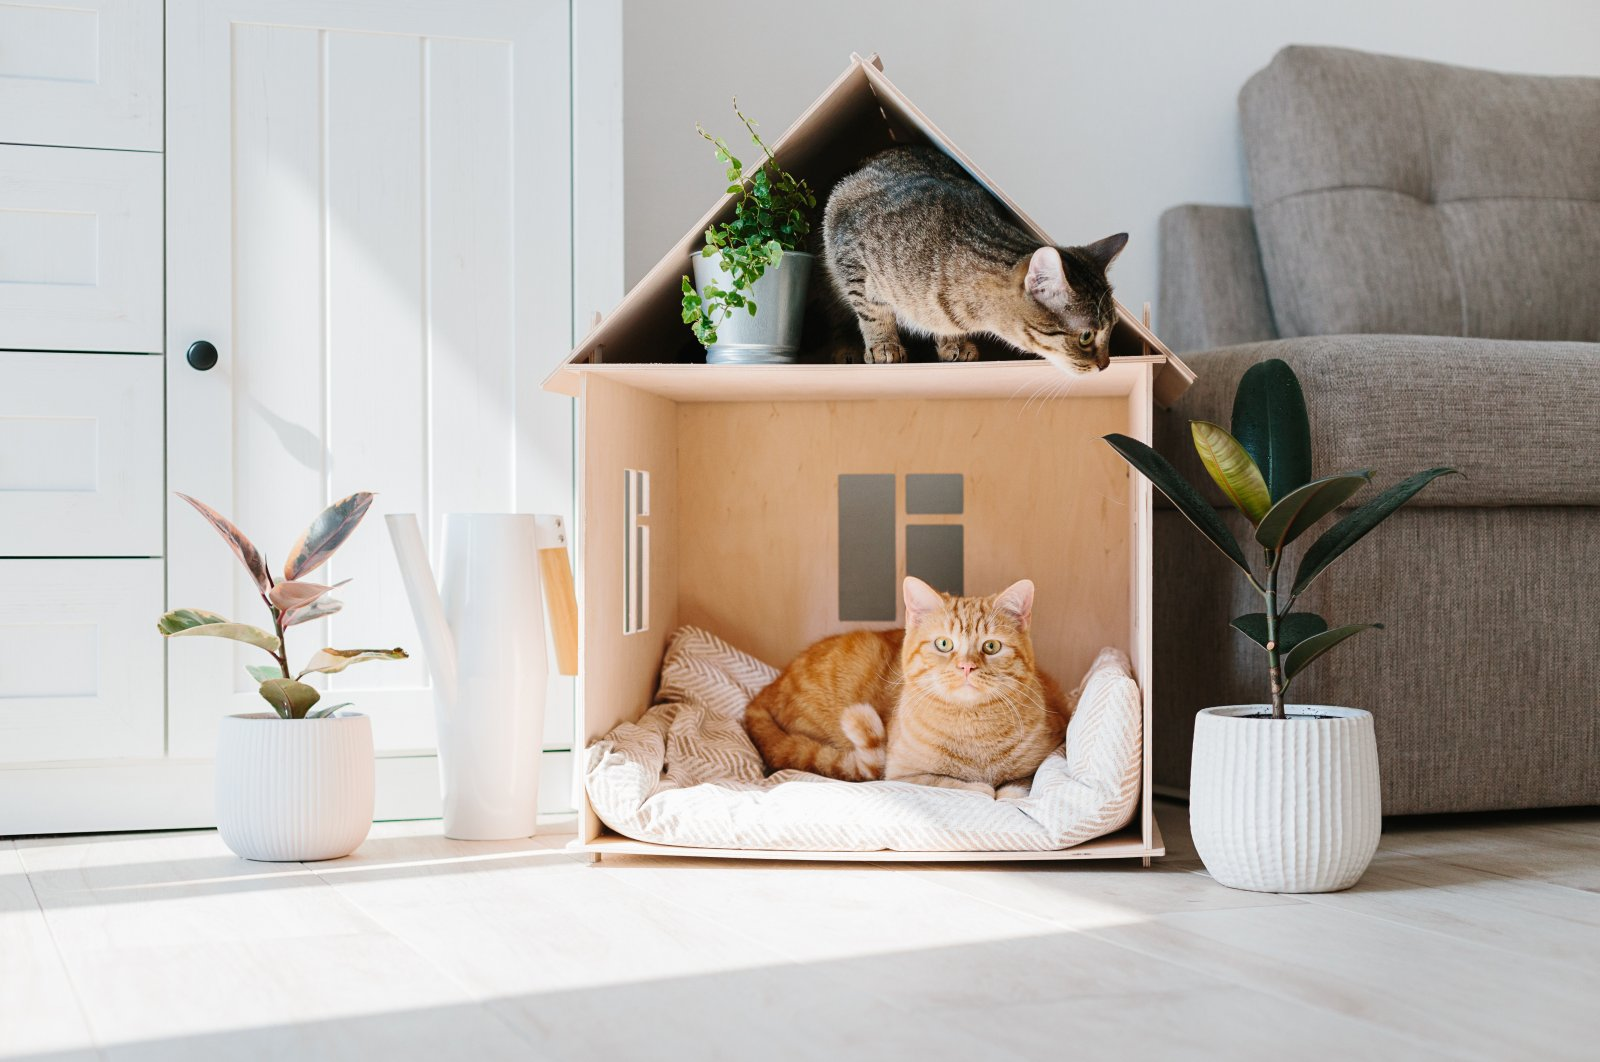 Two cats are seen in a wooden cat house in a living room. (Shutterstock Photo)